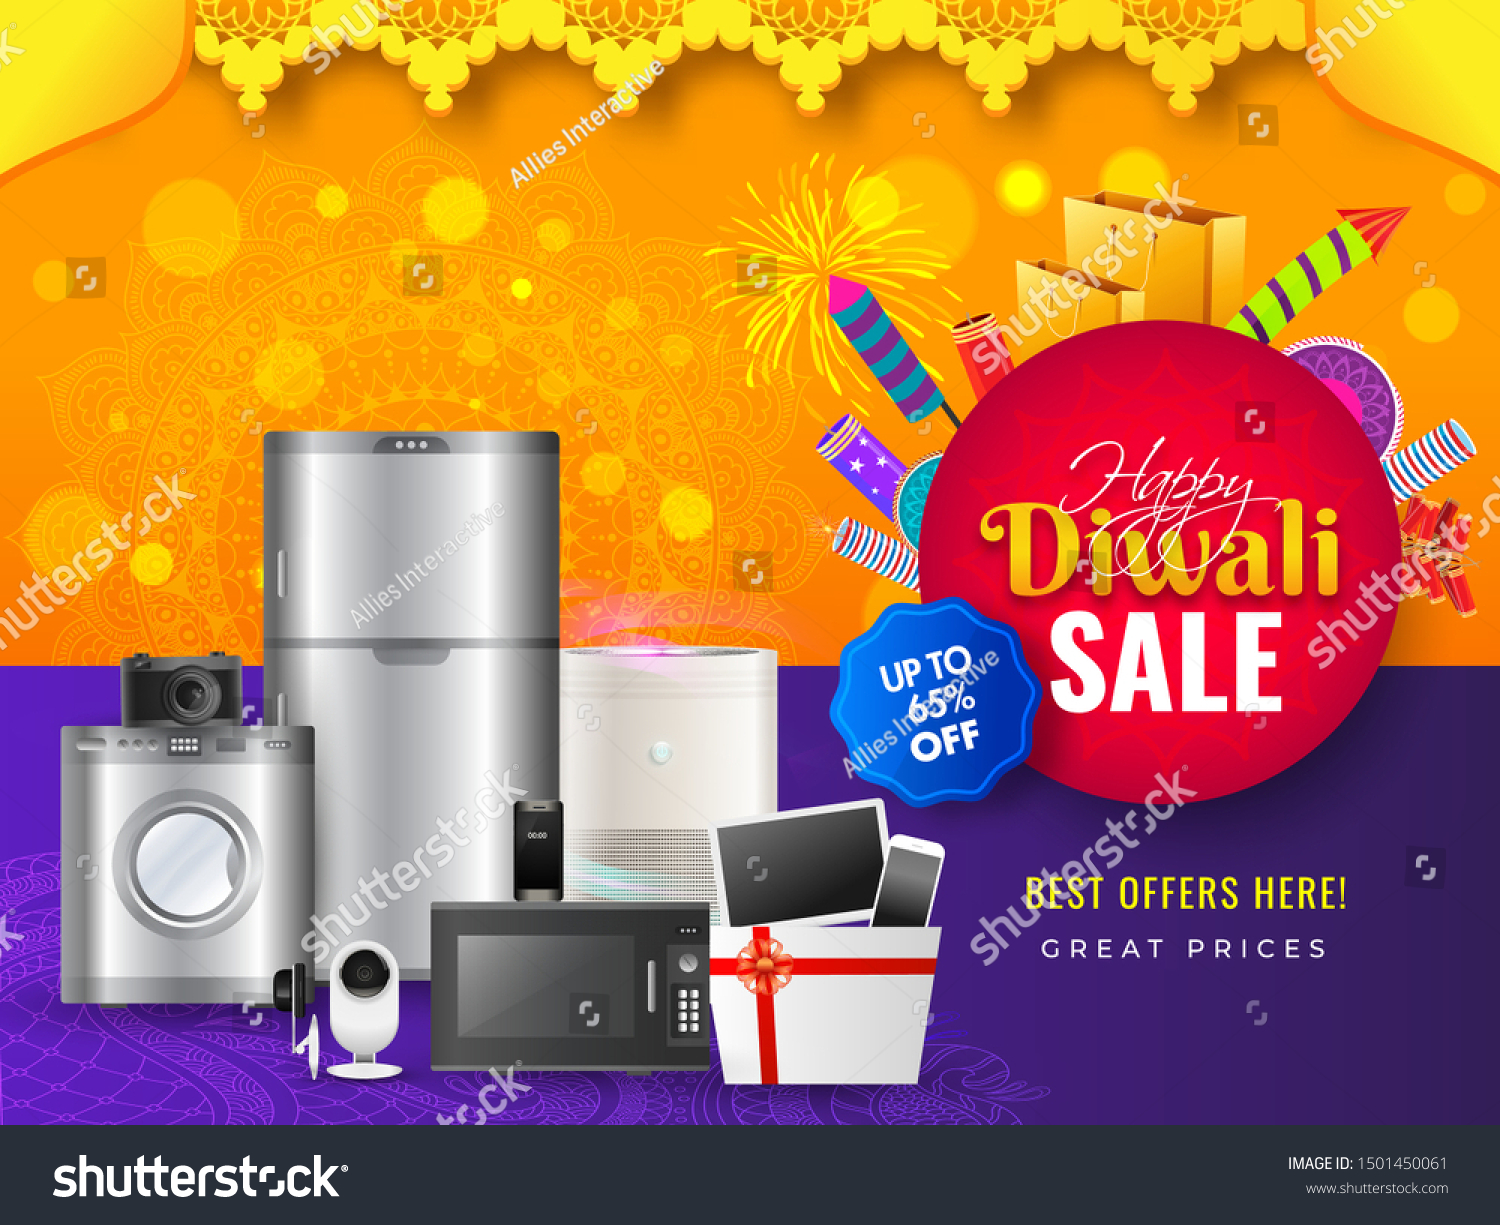 Home Appliance Electronic Sale Banner Poster Stock Vector Royalty Free 1501450061